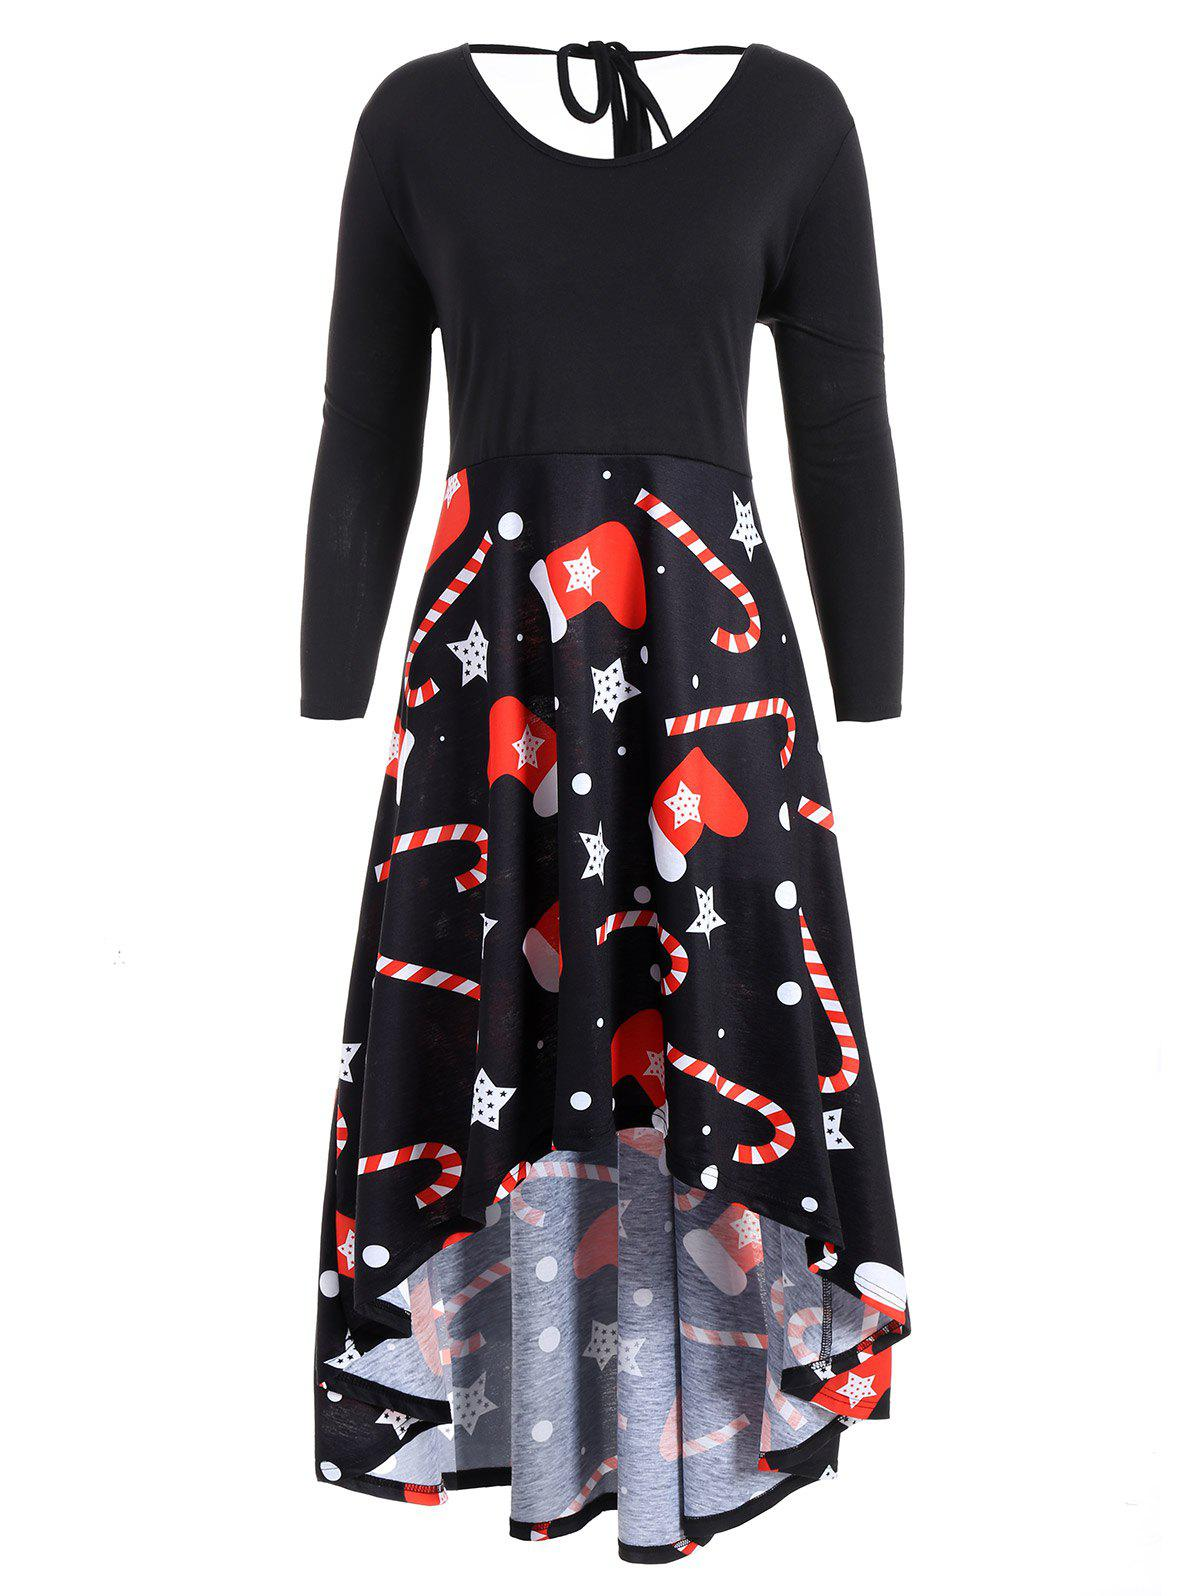 Christmas Print Plus Size High Low DressWOMEN<br><br>Size: XL; Color: BLACK; Style: Vintage; Material: Polyester; Silhouette: Asymmetrical; Dresses Length: Mid-Calf; Neckline: Round Collar; Sleeve Length: 3/4 Length Sleeves; Waist: High Waisted; Pattern Type: Print; With Belt: No; Season: Fall,Spring,Winter; Weight: 0.4400kg; Package Contents: 1 x Dress;